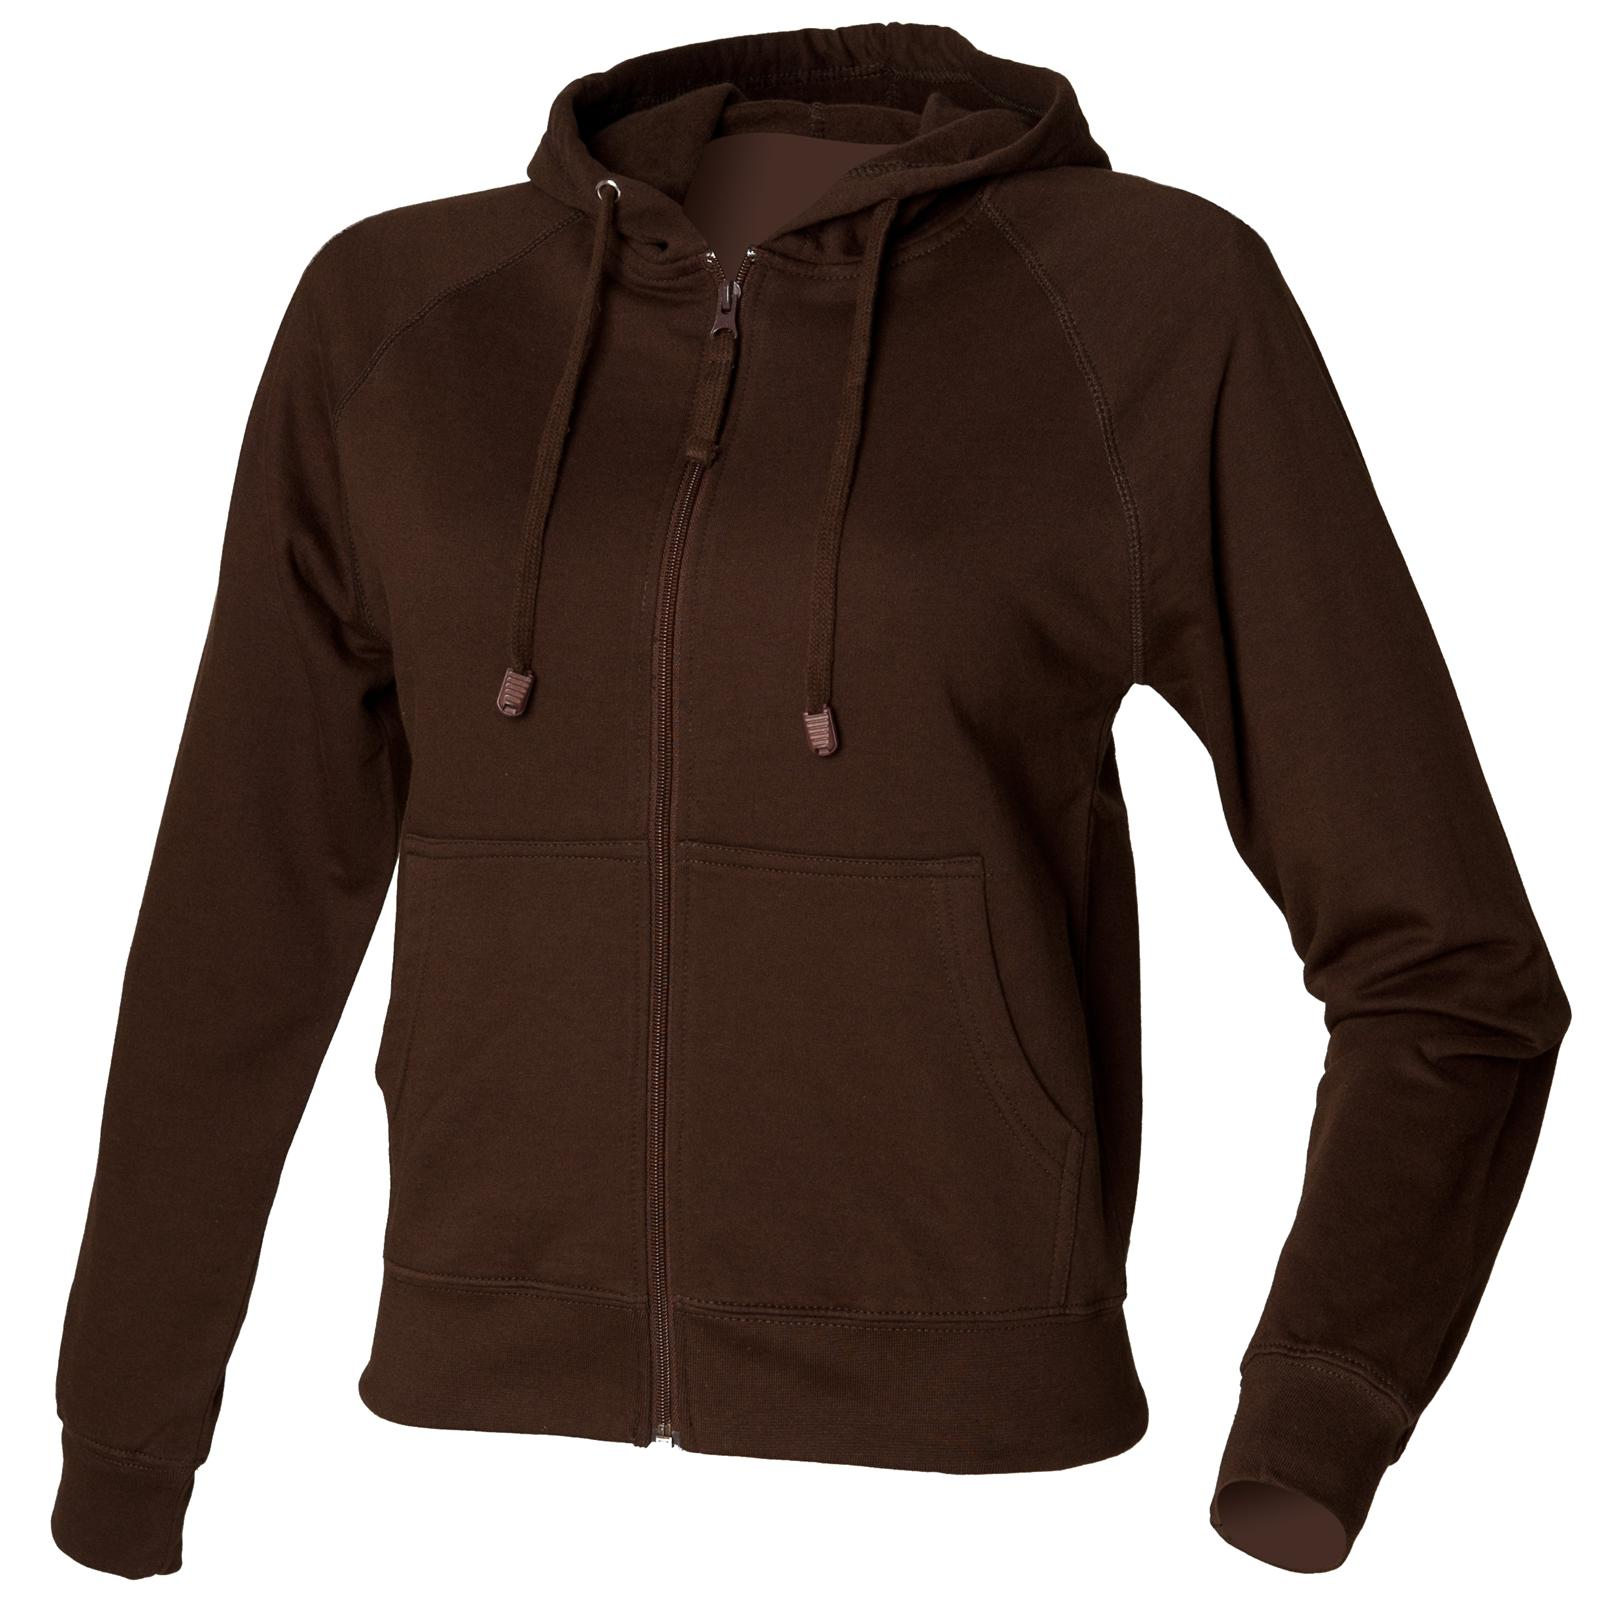 New-SKINNI-FIT-Womens-Ladies-Cotton-Zip-Up-Hoodie-Jacket-in-9-Colours-S-XL